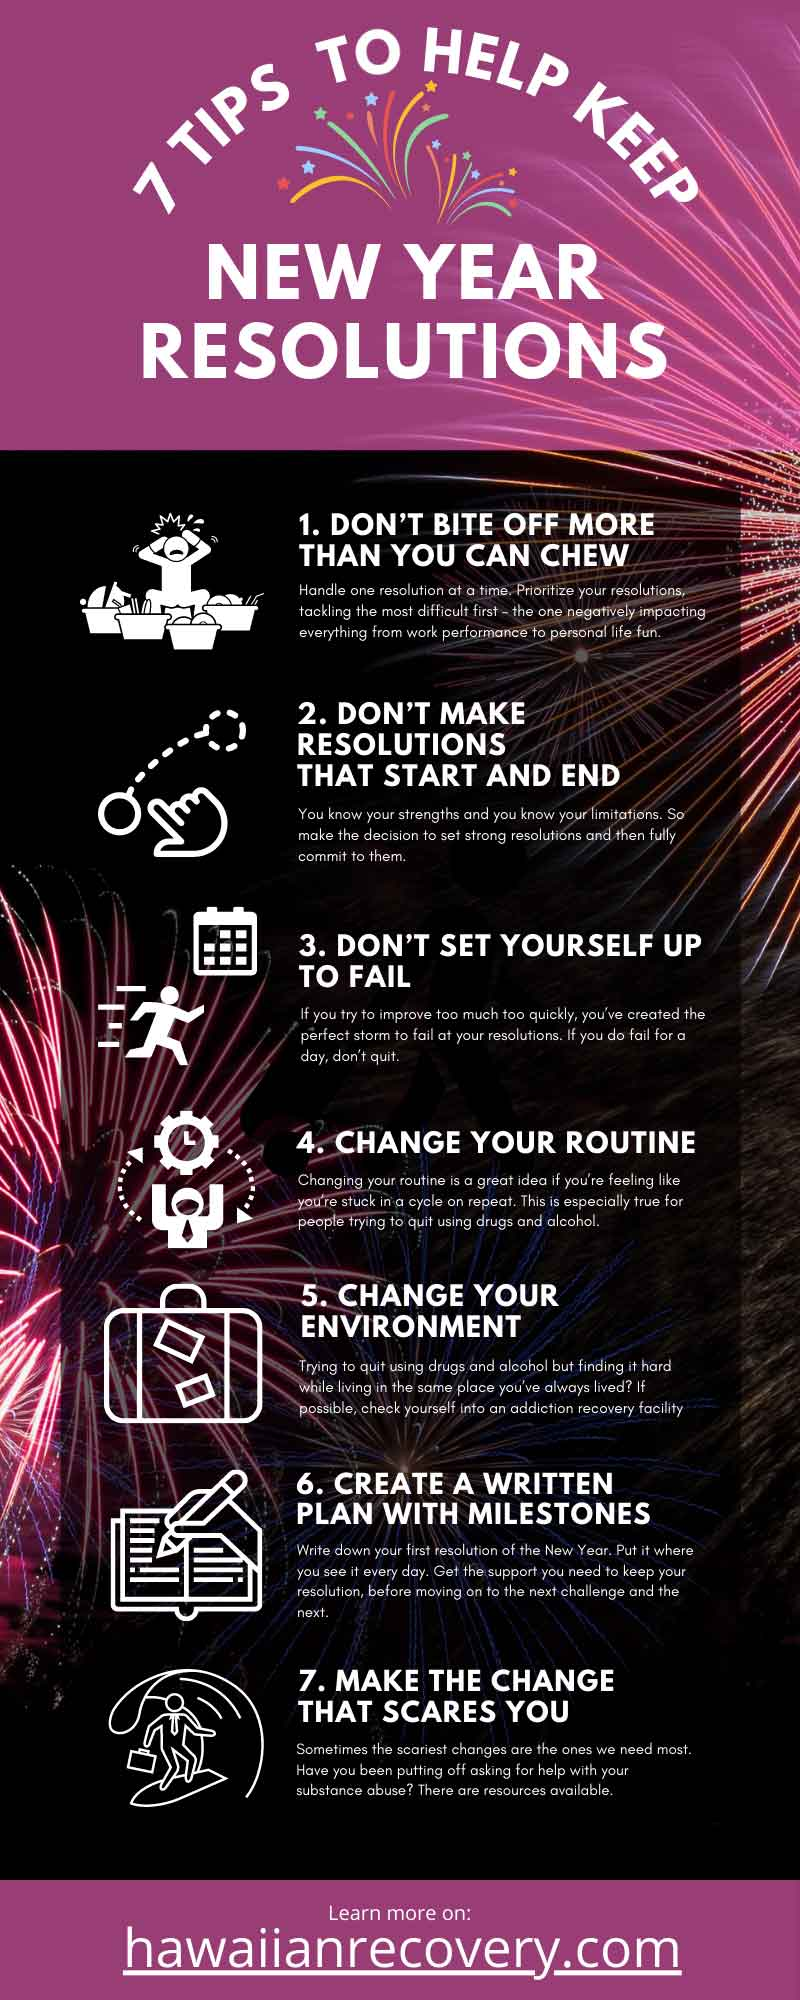 TIPS TO HELP KEEP NEW YEAR RESOLUTIONS FOR 2021